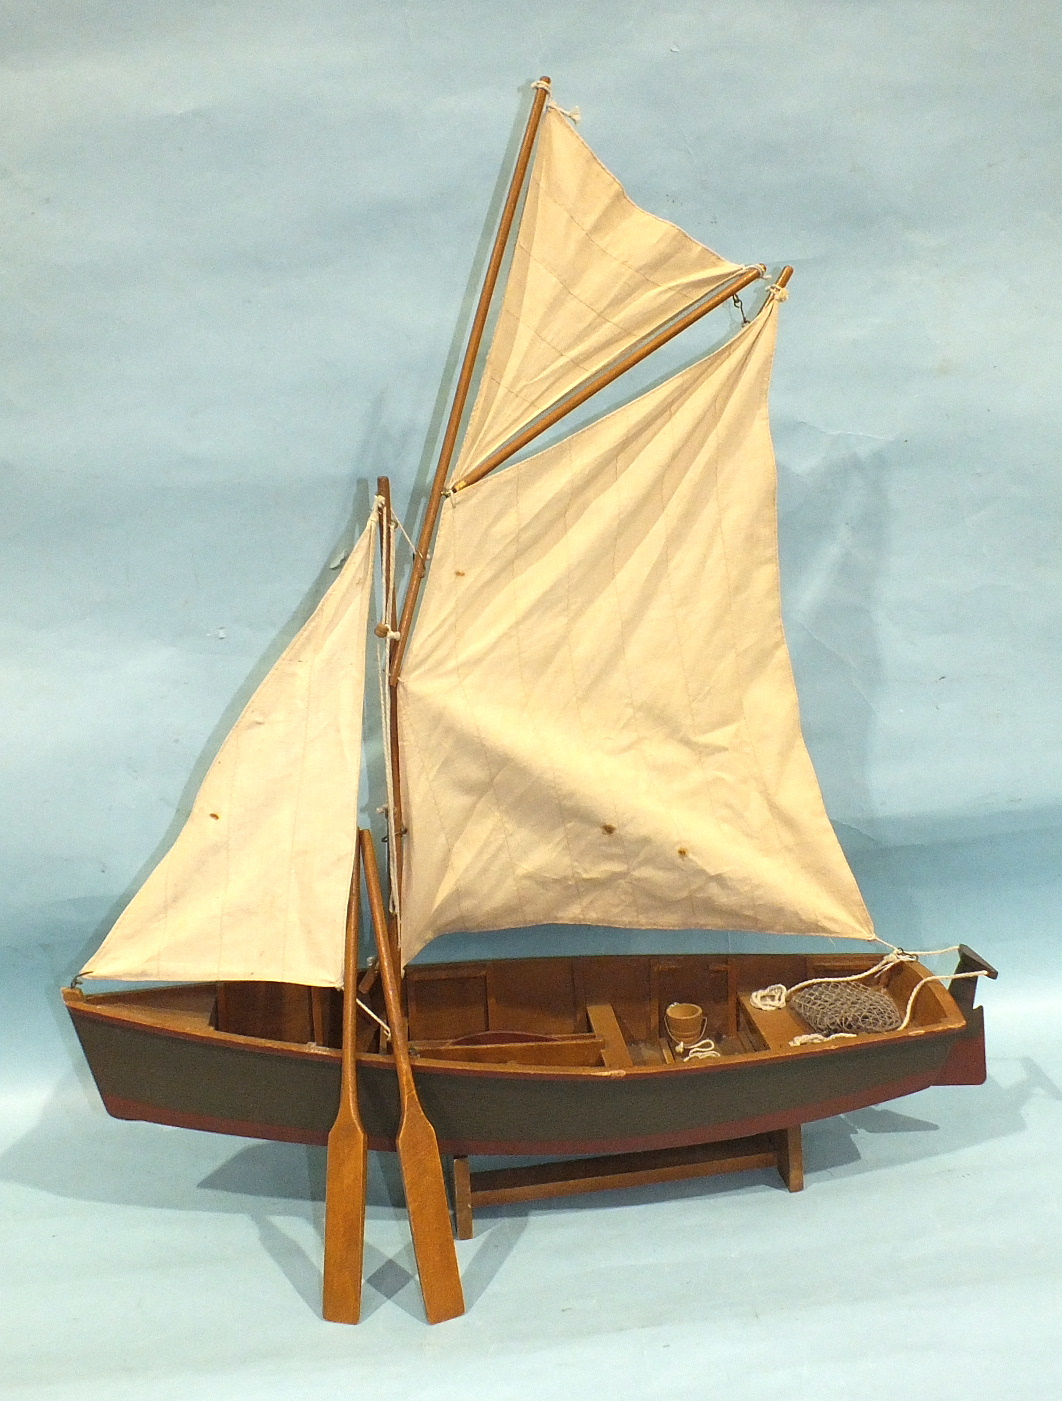 Lot 71 - A wooden model of a fishing smack, with gaff rig, crab pot, bucket, net and oars, on stand, 57cm